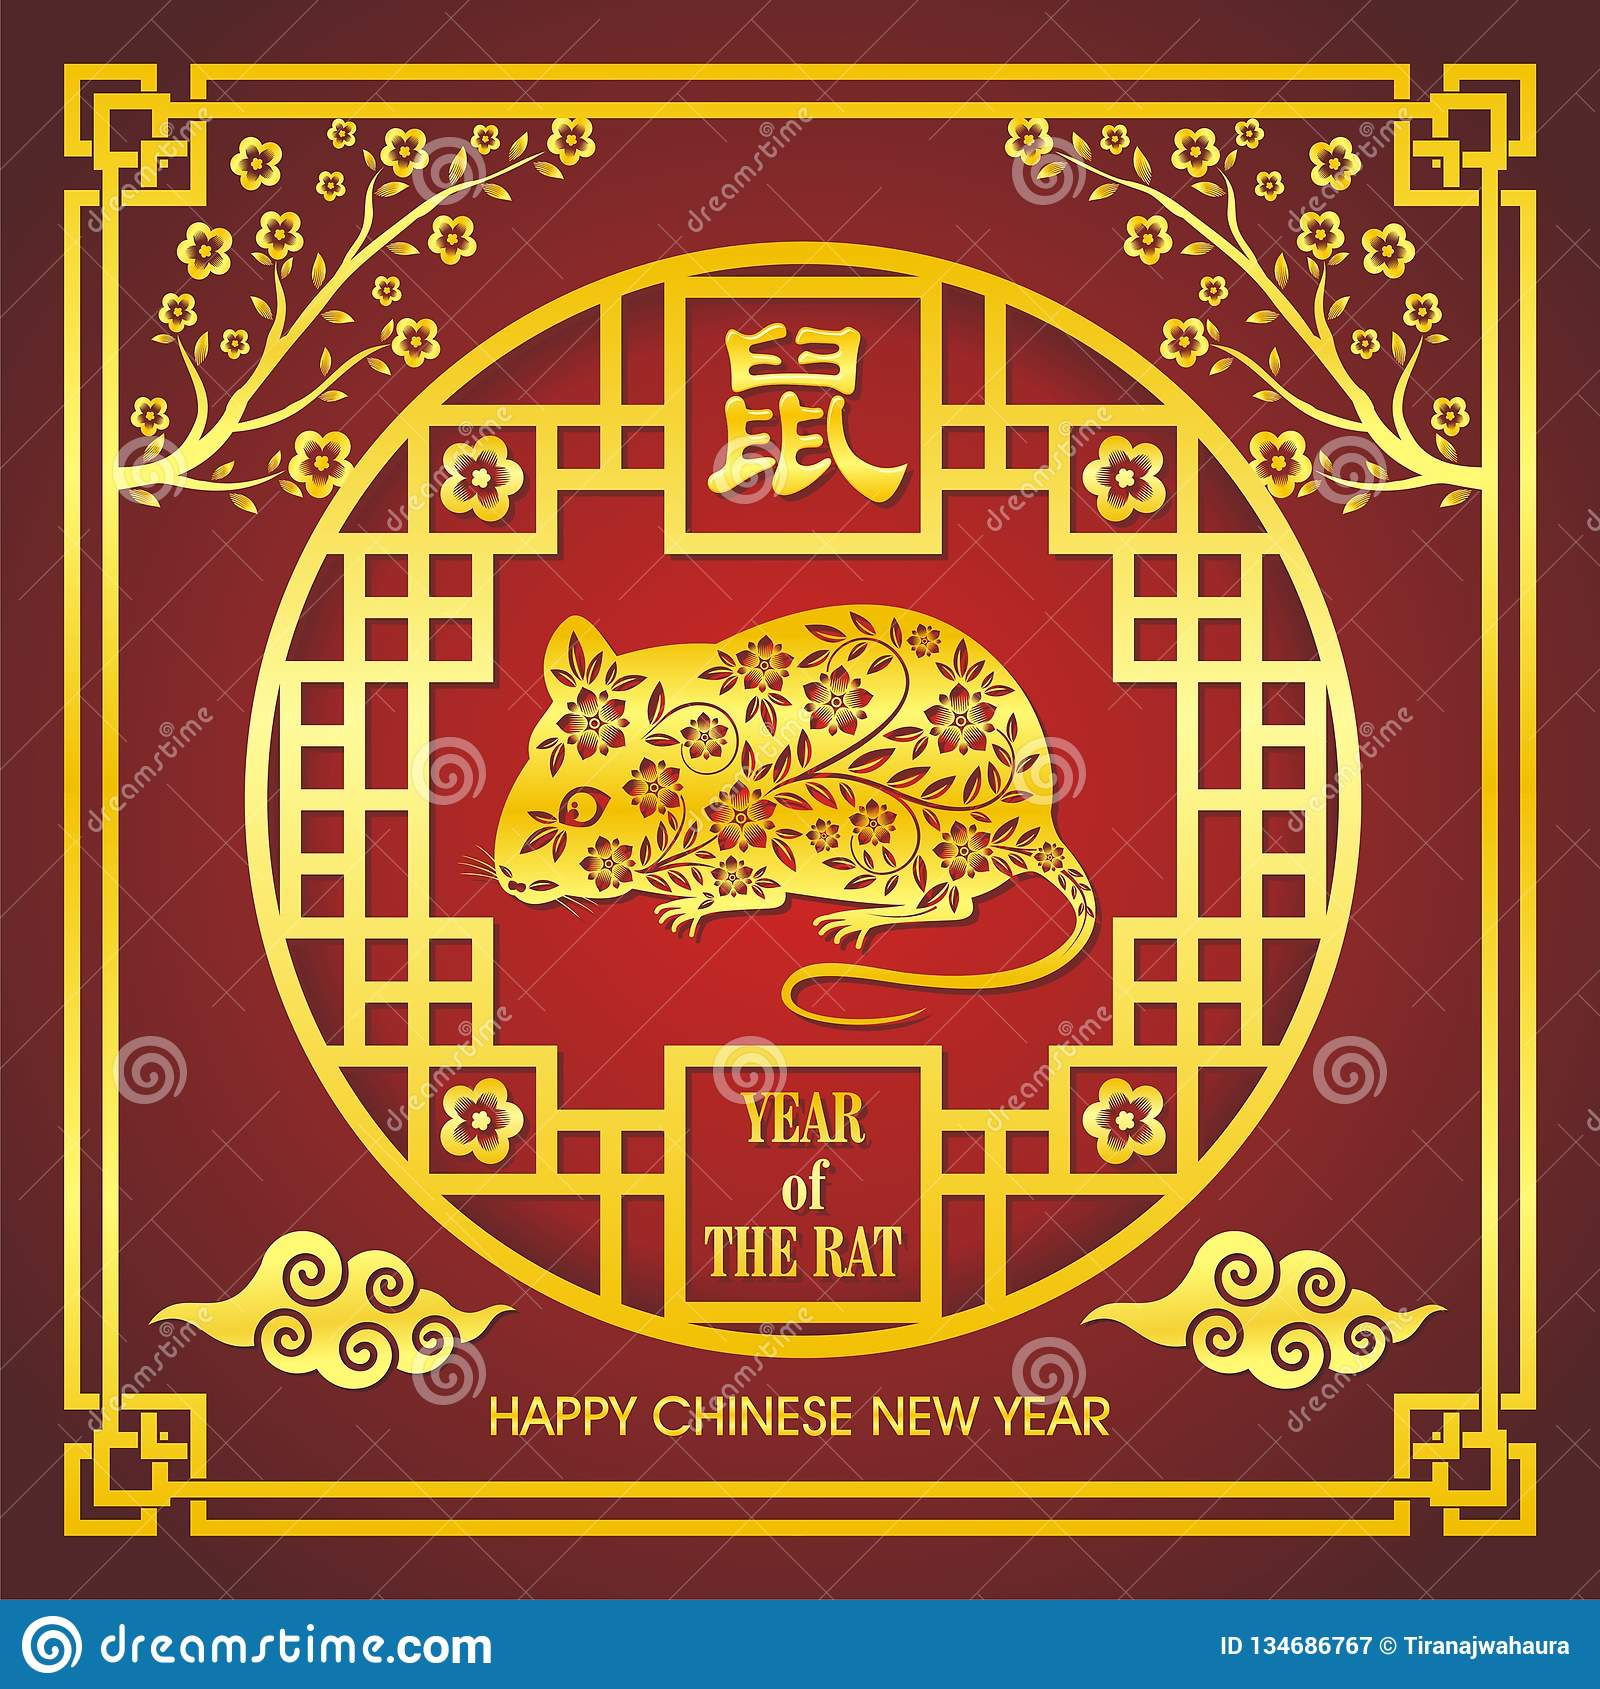 Year Of The Rat, Chinese New Year Vector Design Stock ...